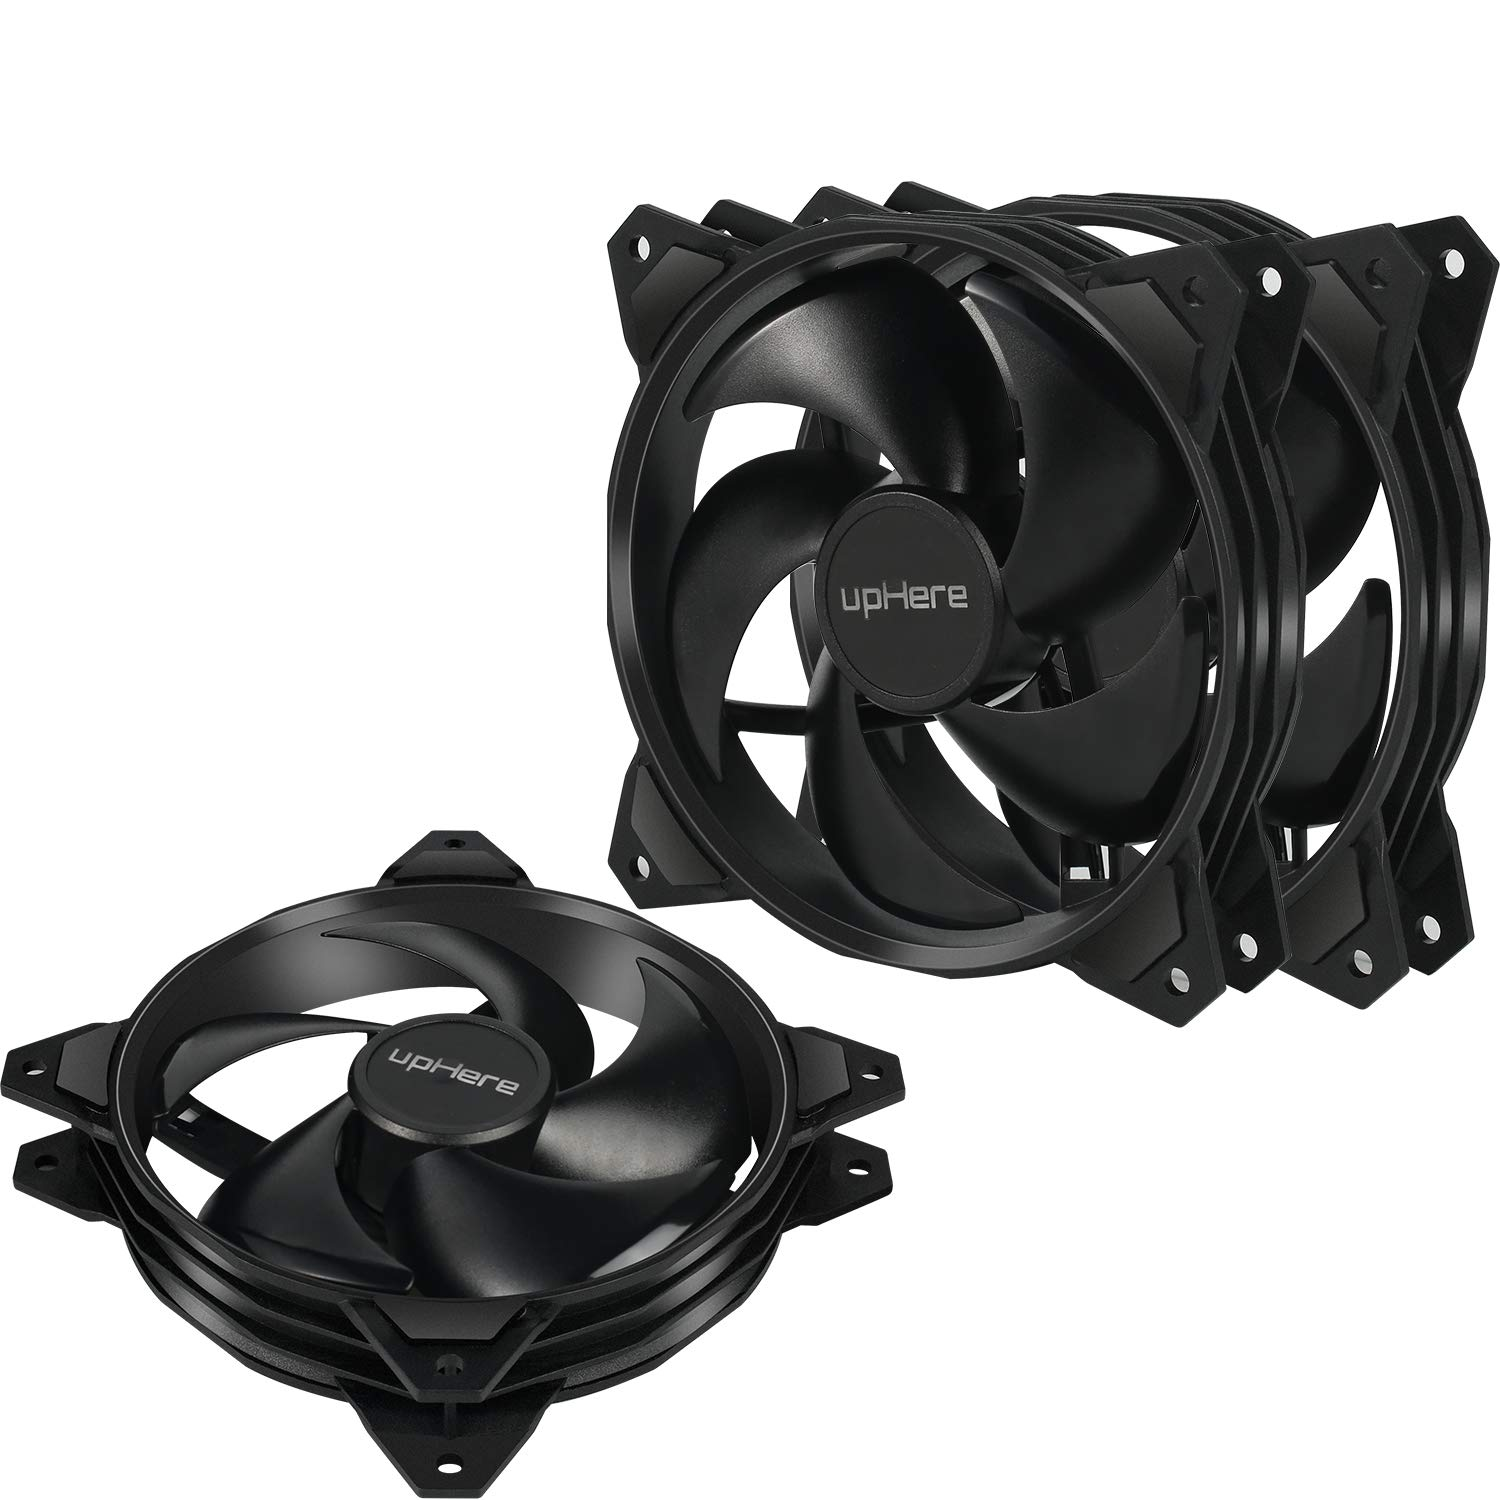 uphere Long Life Computer Case Fan 120mm Cooling Case Fan for Computer Cases Cooling Black 3-Pack, PF120BK3-3